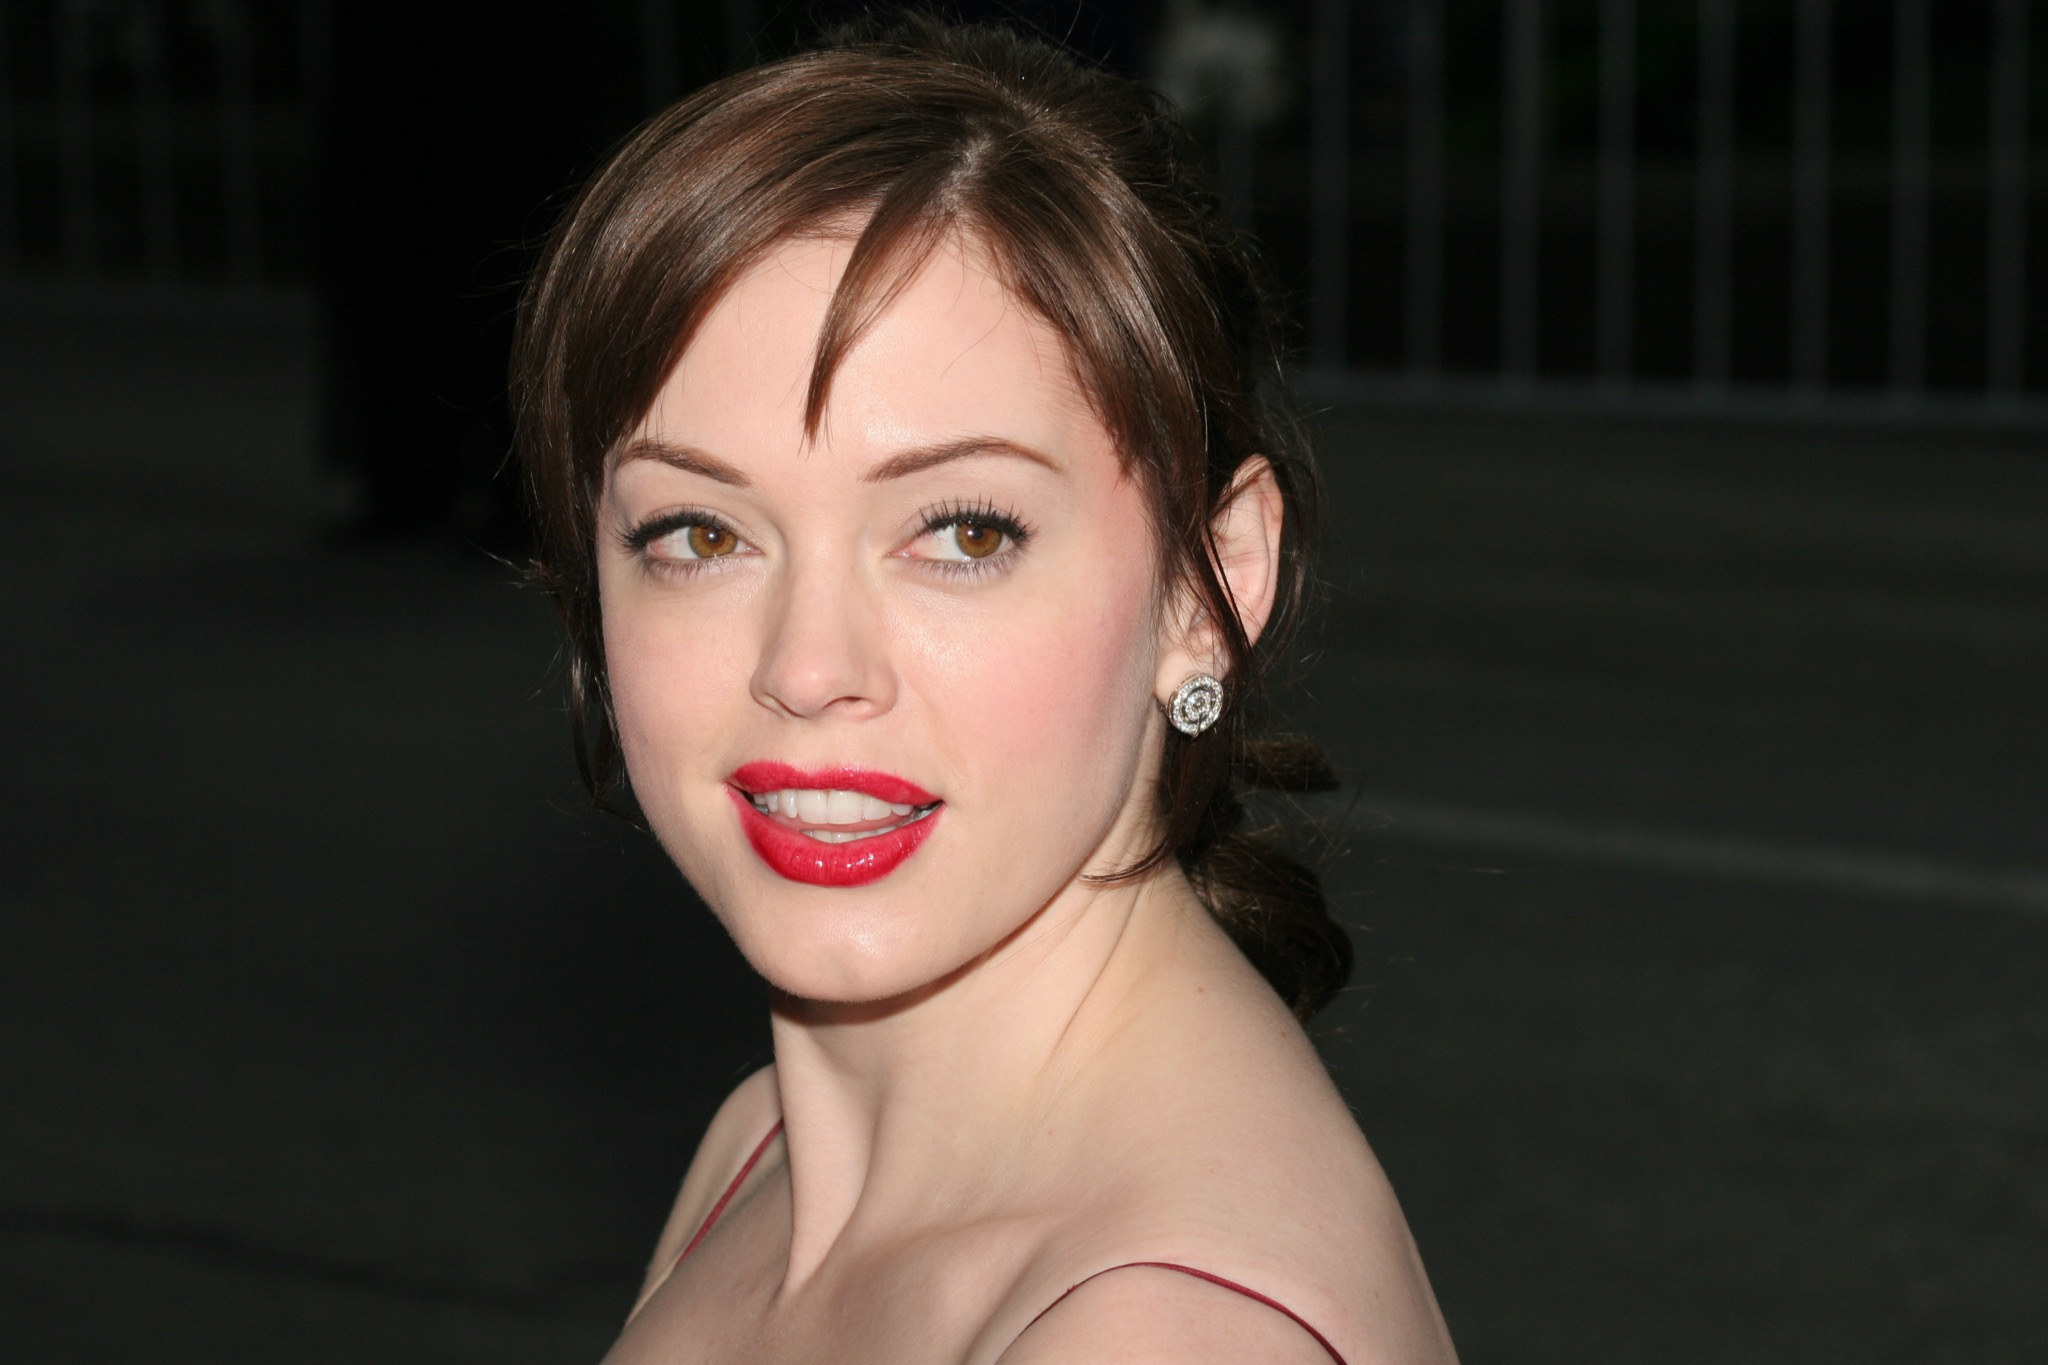 Rose Mcgowan Hottest Photos On The Internet